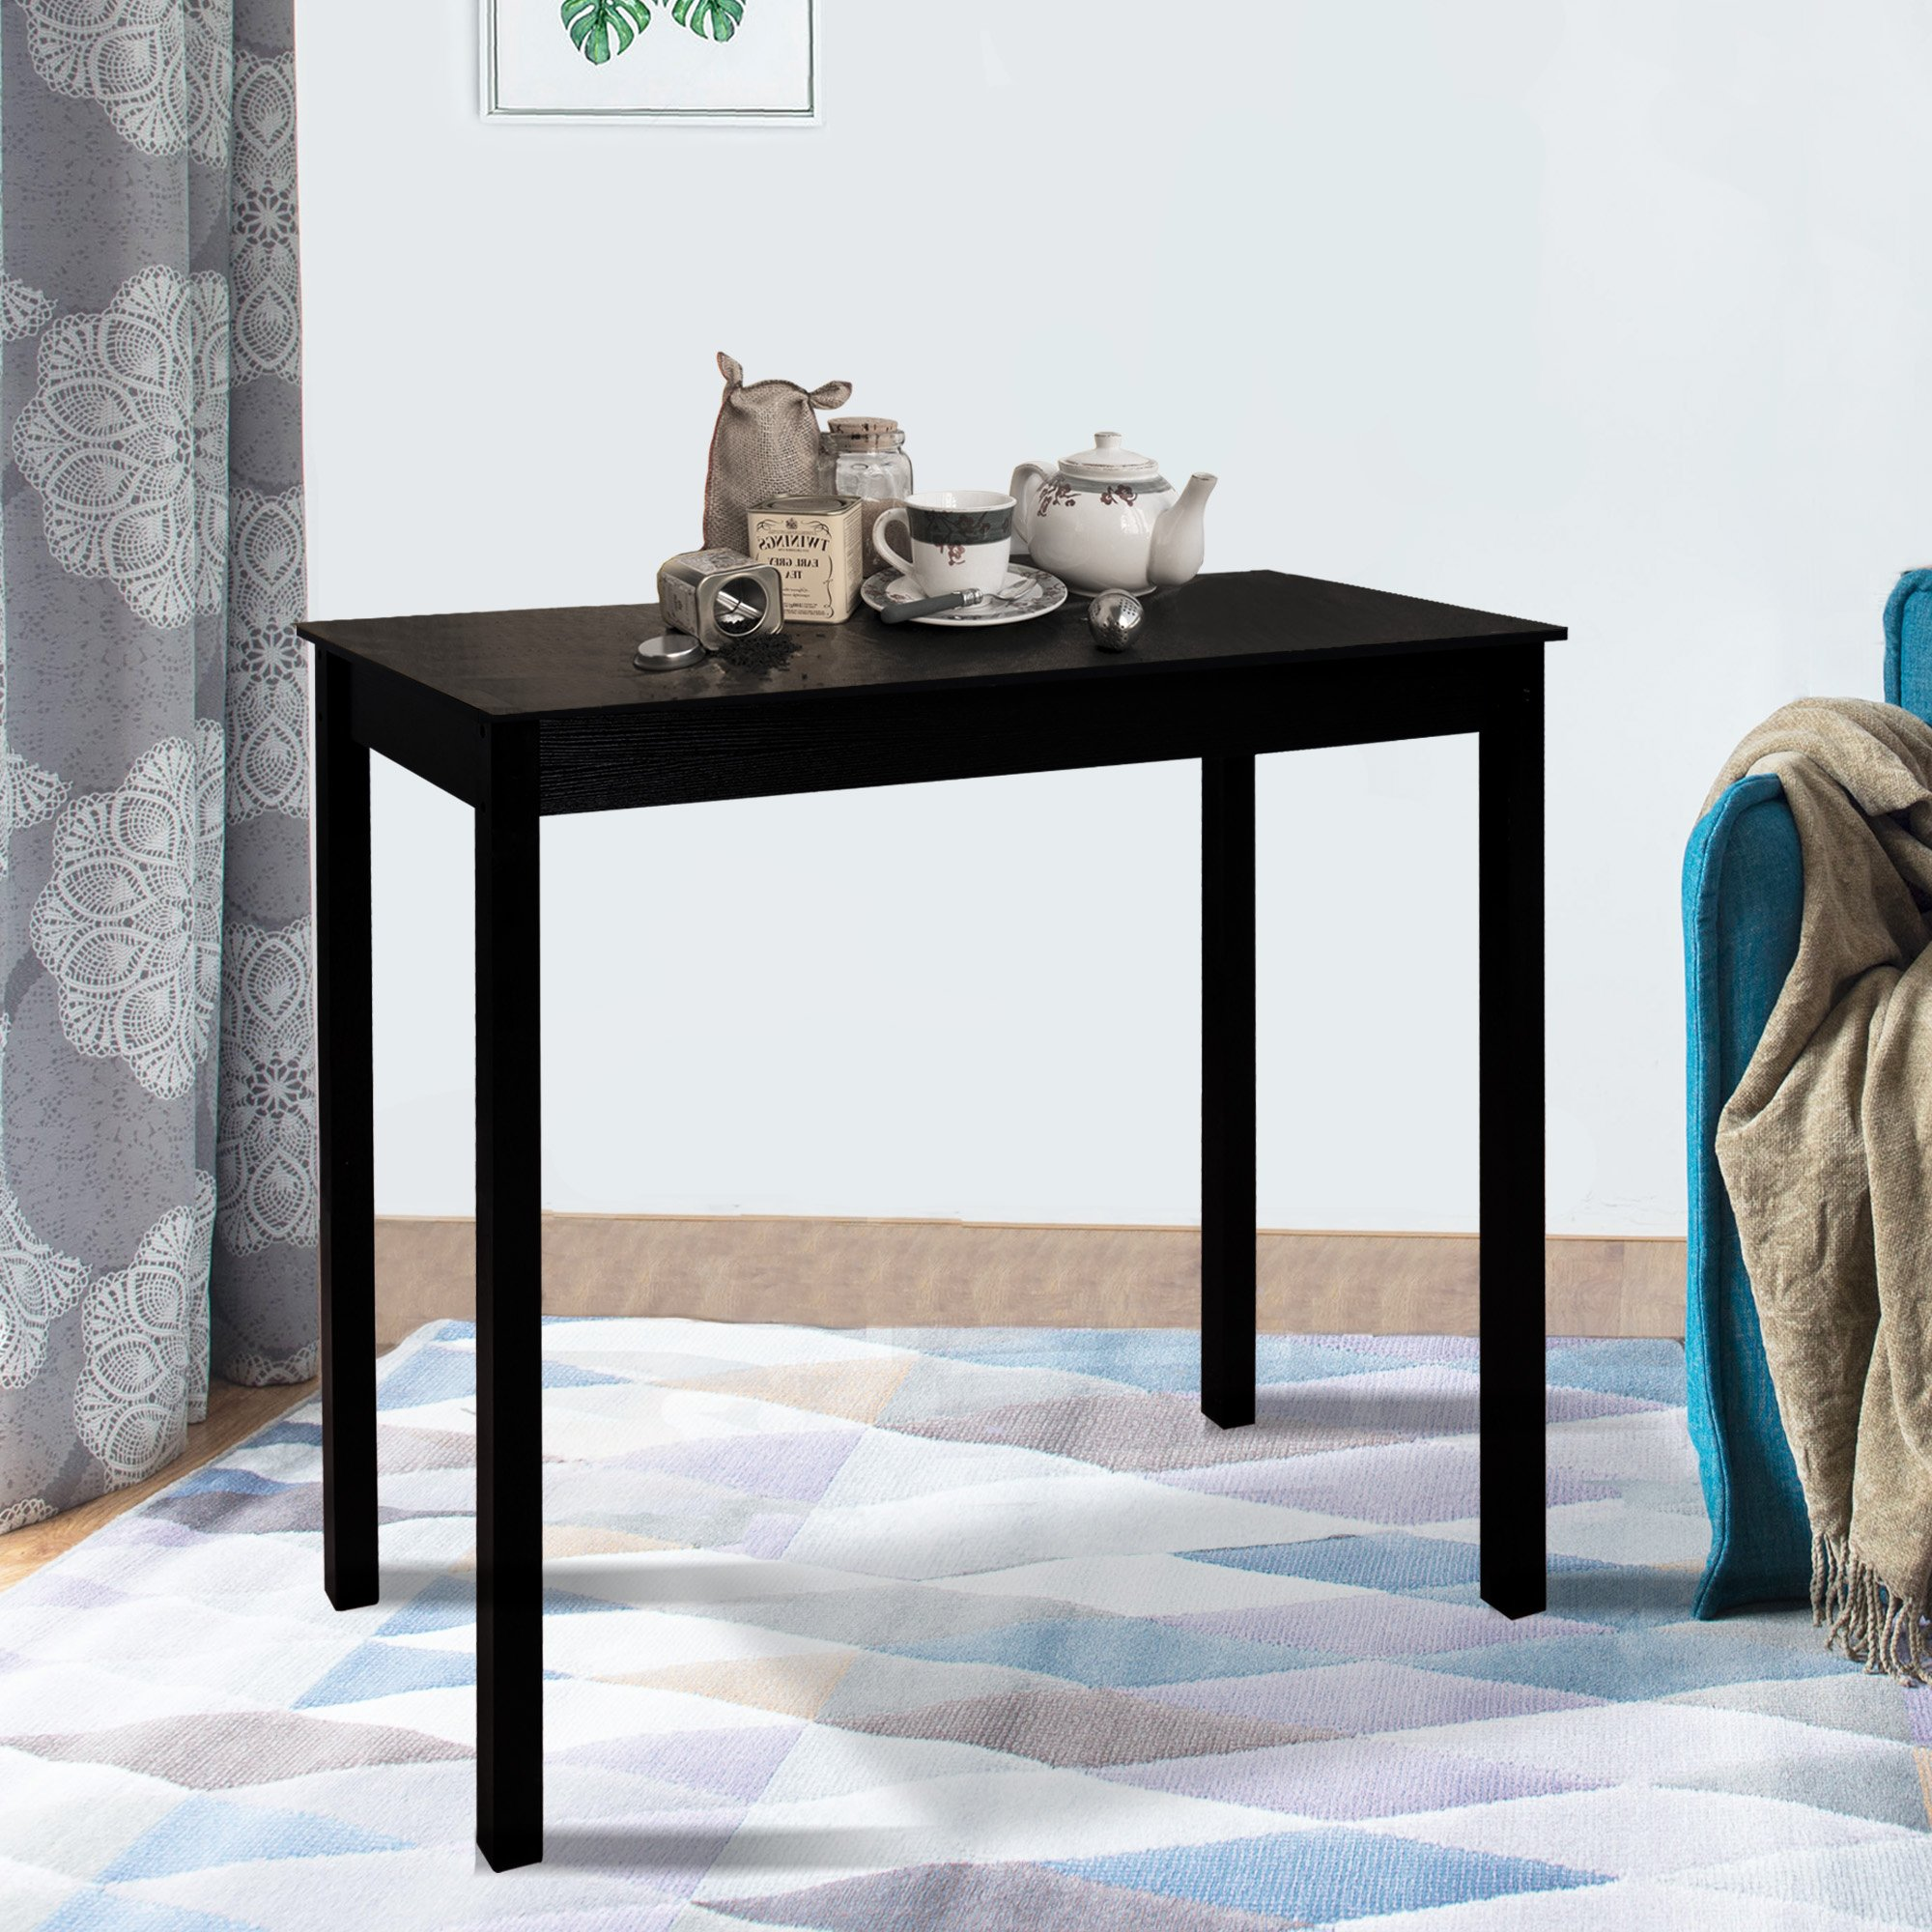 Cloud Mountain Dining Table Pub Table Counter Height Home Bar Table Kitchen Bistro Parkland High Square Tall Table Home Bar, Black